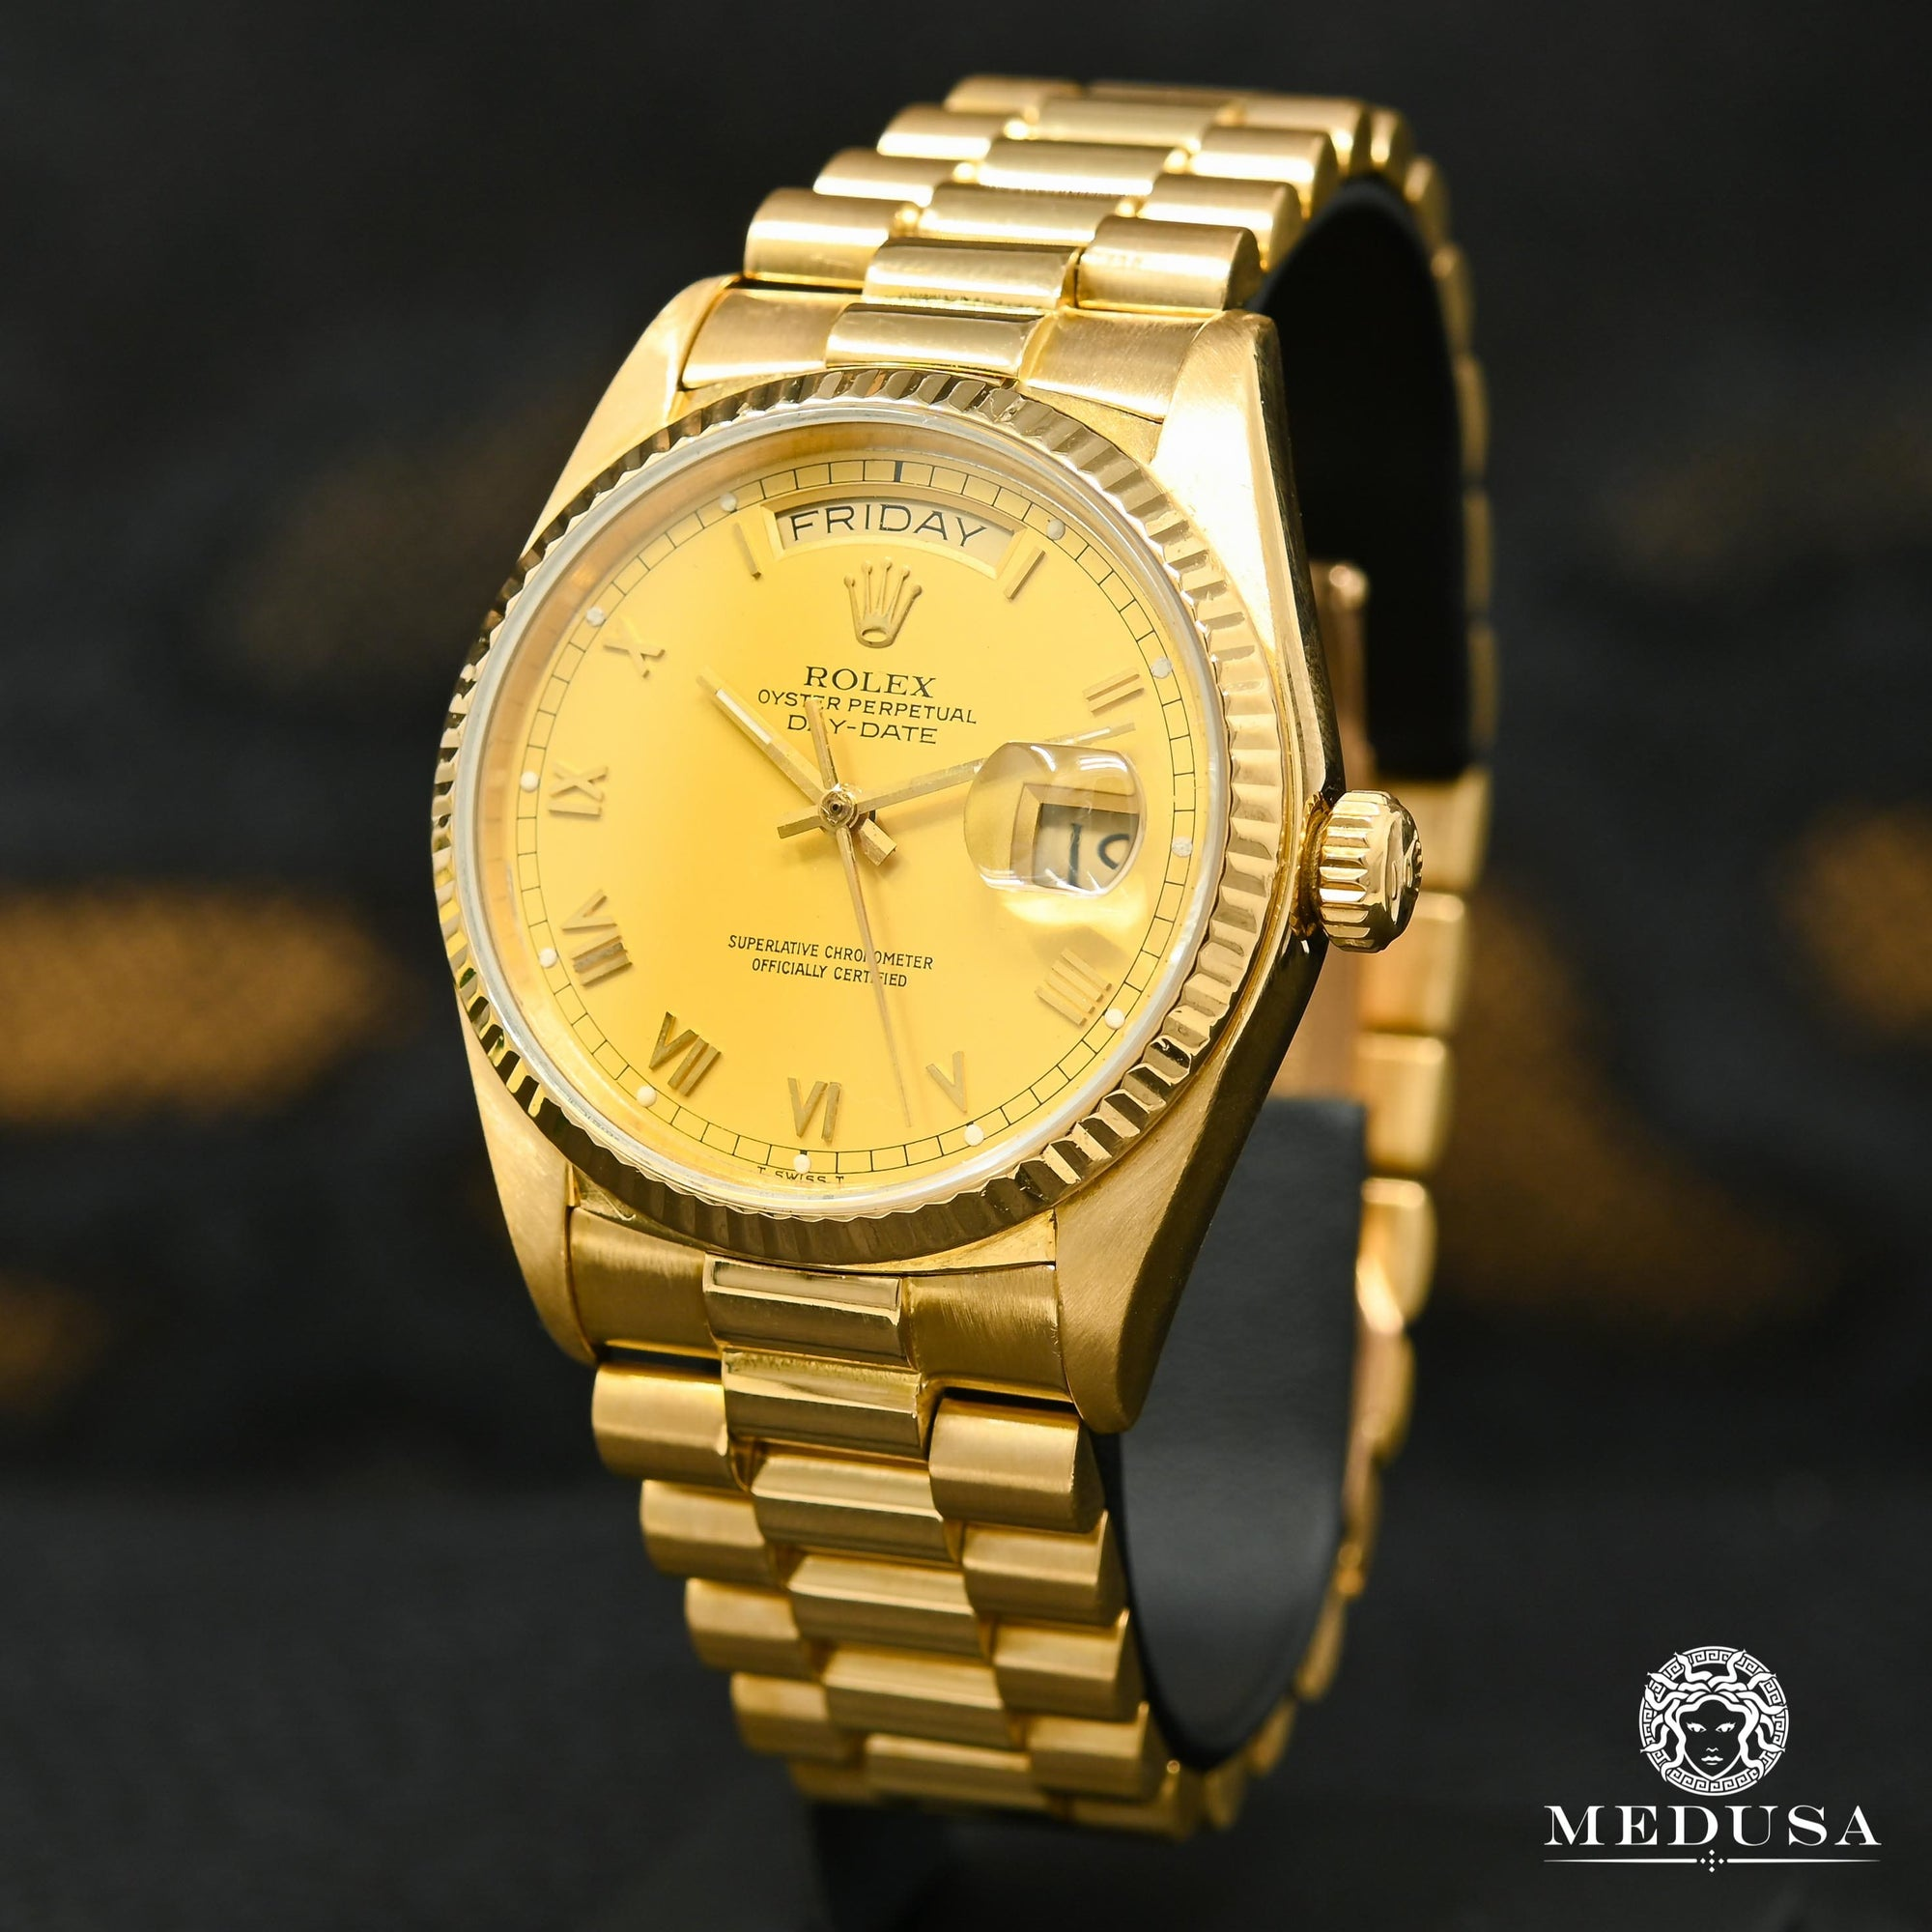 Rolex President Day-Date 36mm - Champagne Romain